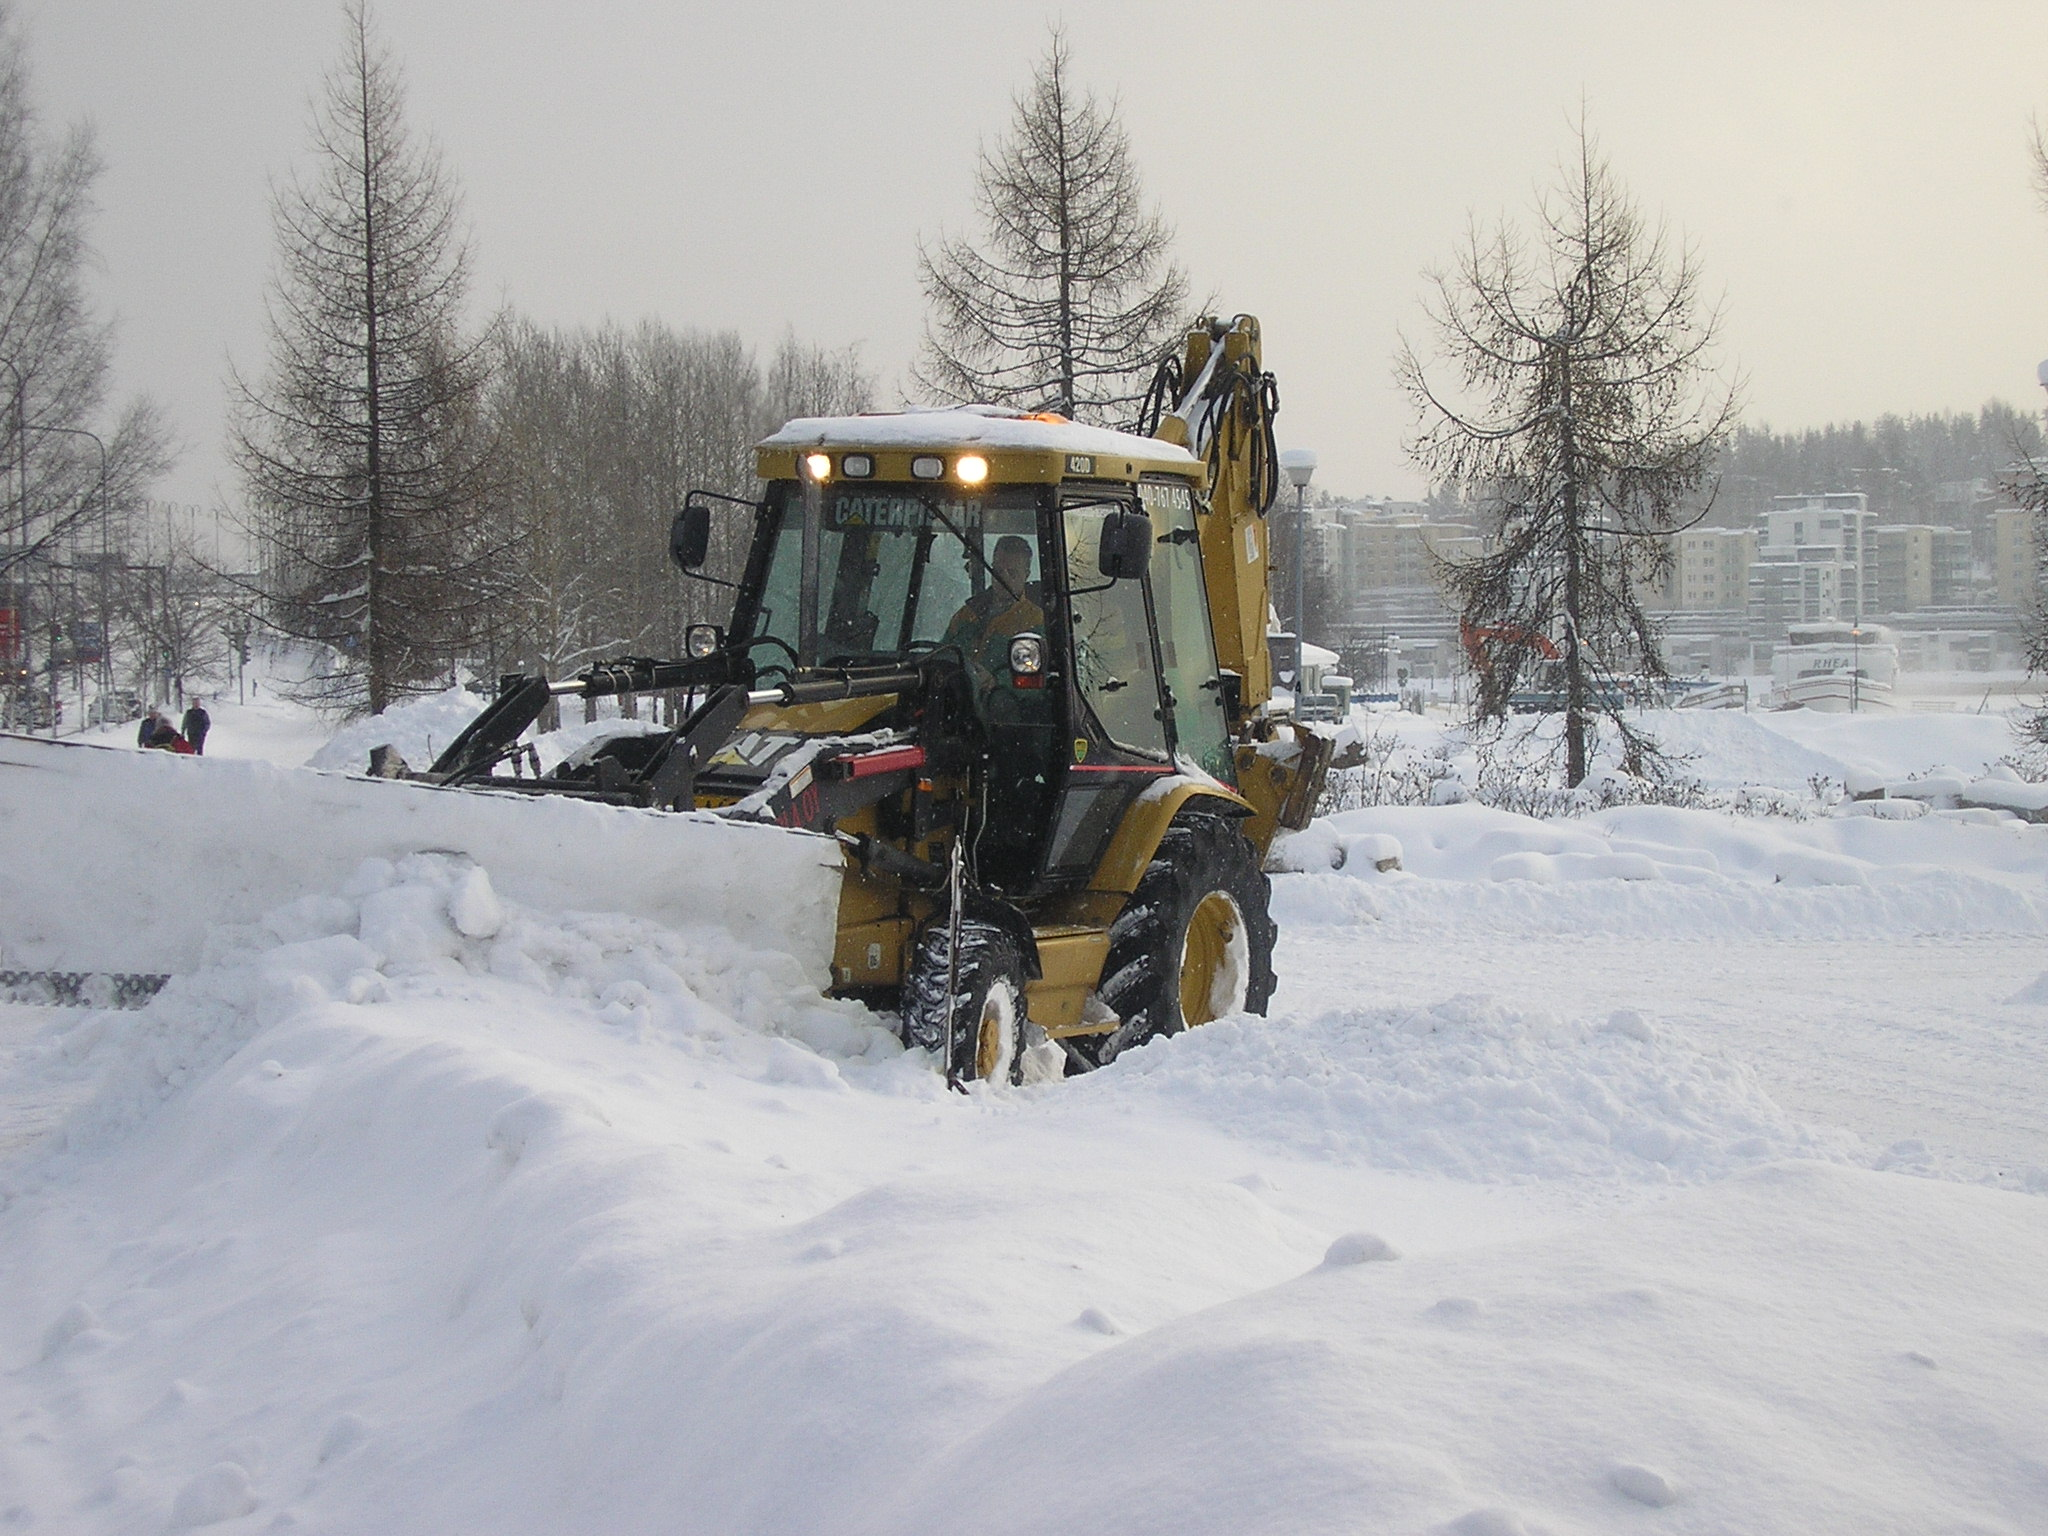 Snow Removal/ Snow & Ice Management - Complete Landscaping Service, Commercial Landscaping Contractors serving MD, DC and VA